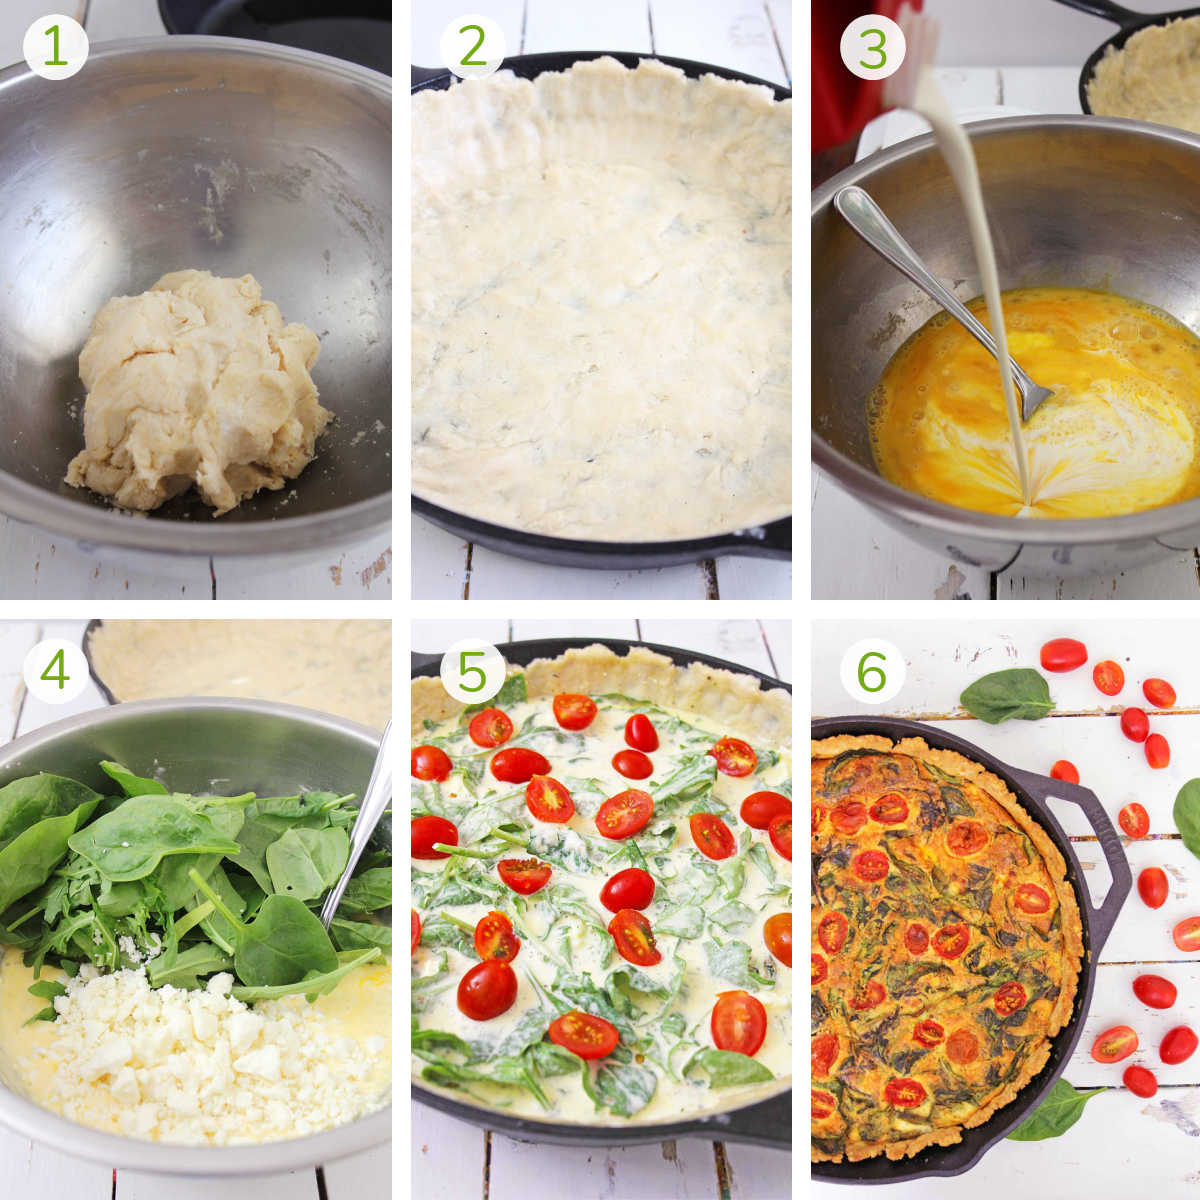 six process photos showing how to make the crust, pour the filling, top with spinach and feta and then baked.